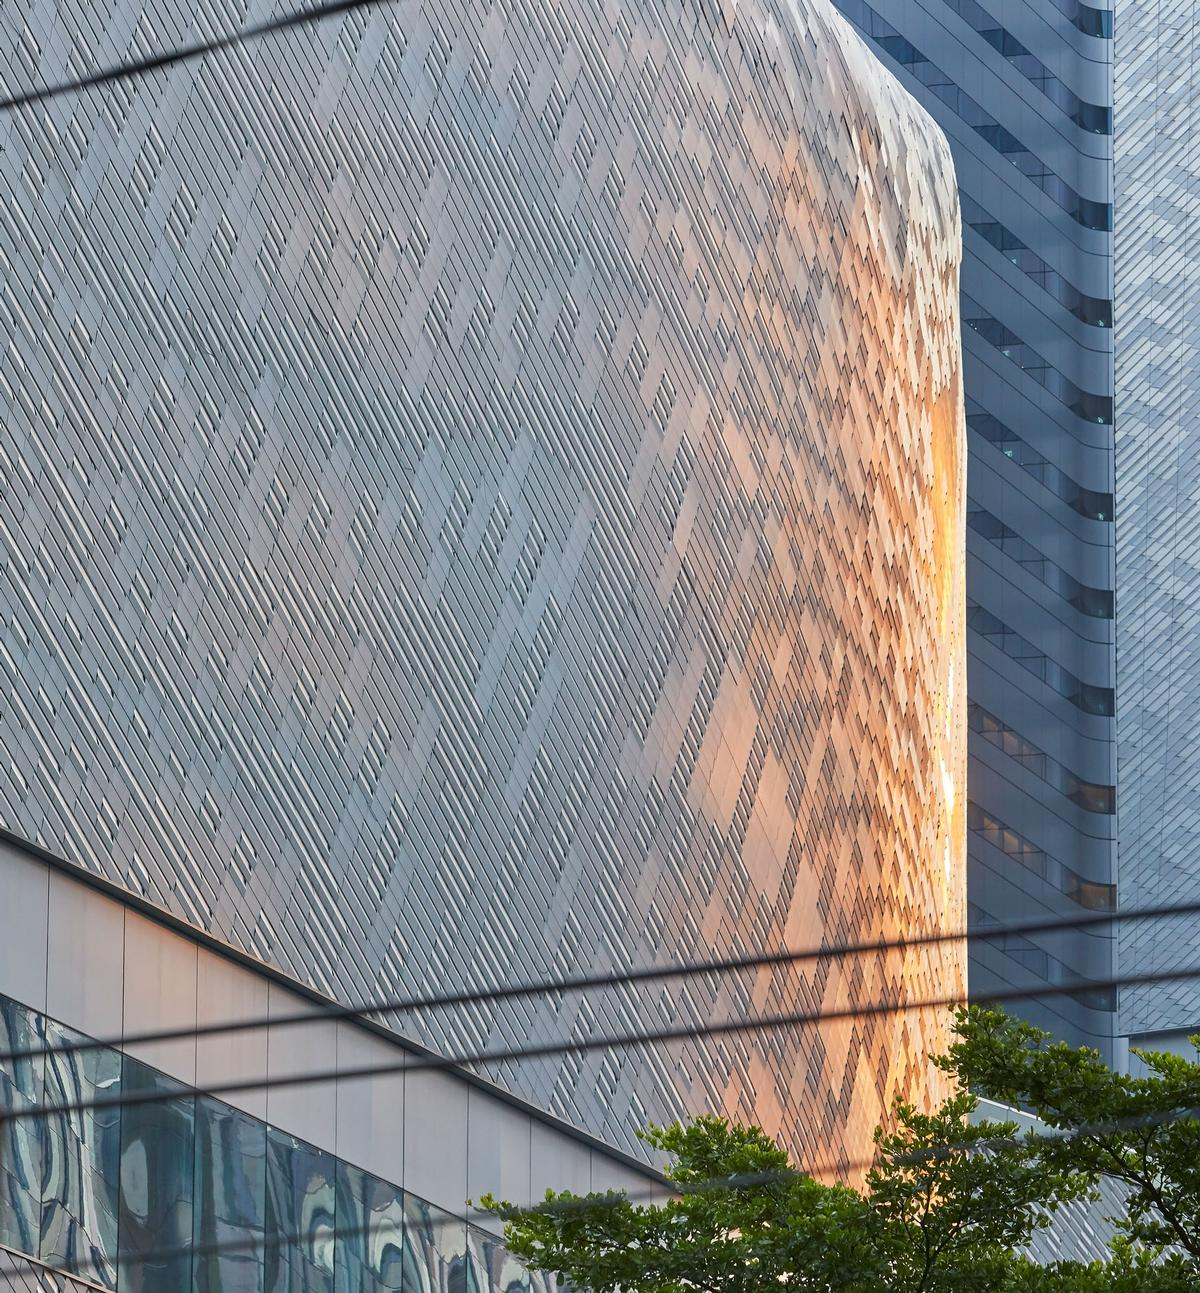 Uniting traditional craftsmanship with digital design technologies, the façade reflects the country's tradition of intricate pattern making / Hufton + Crow